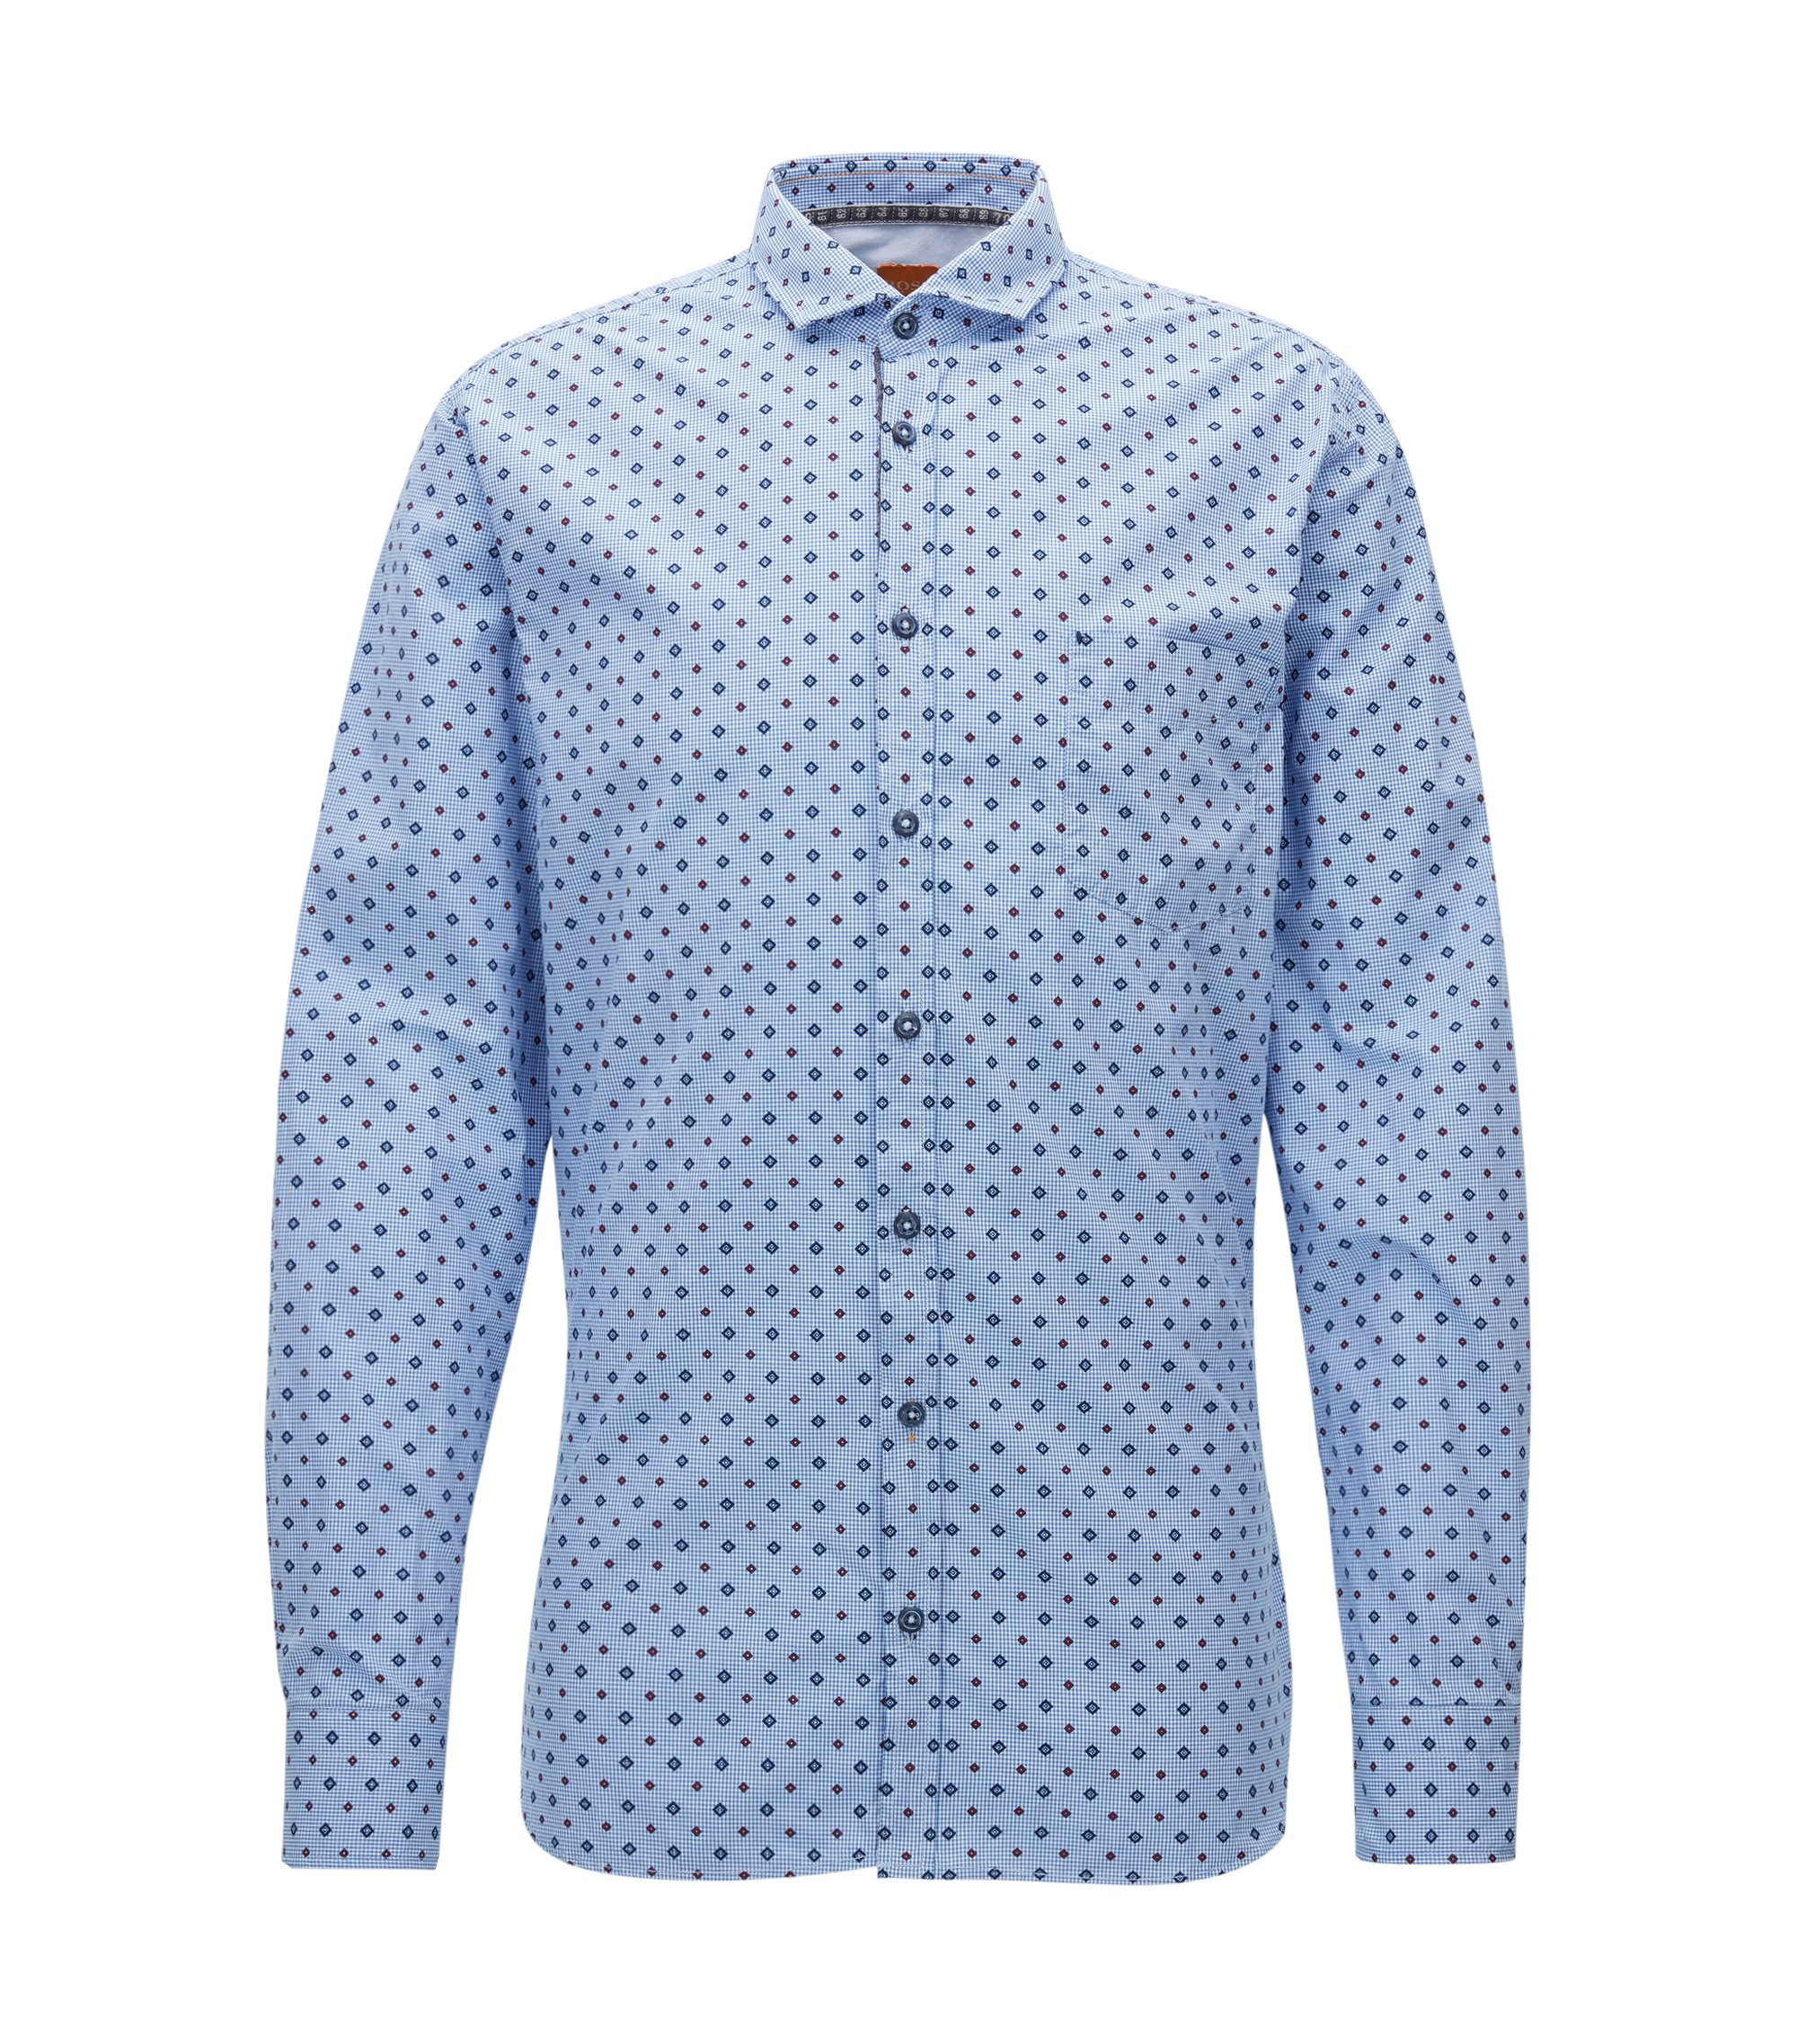 Slim-fit micro-pattern shirt in cotton, Patterned